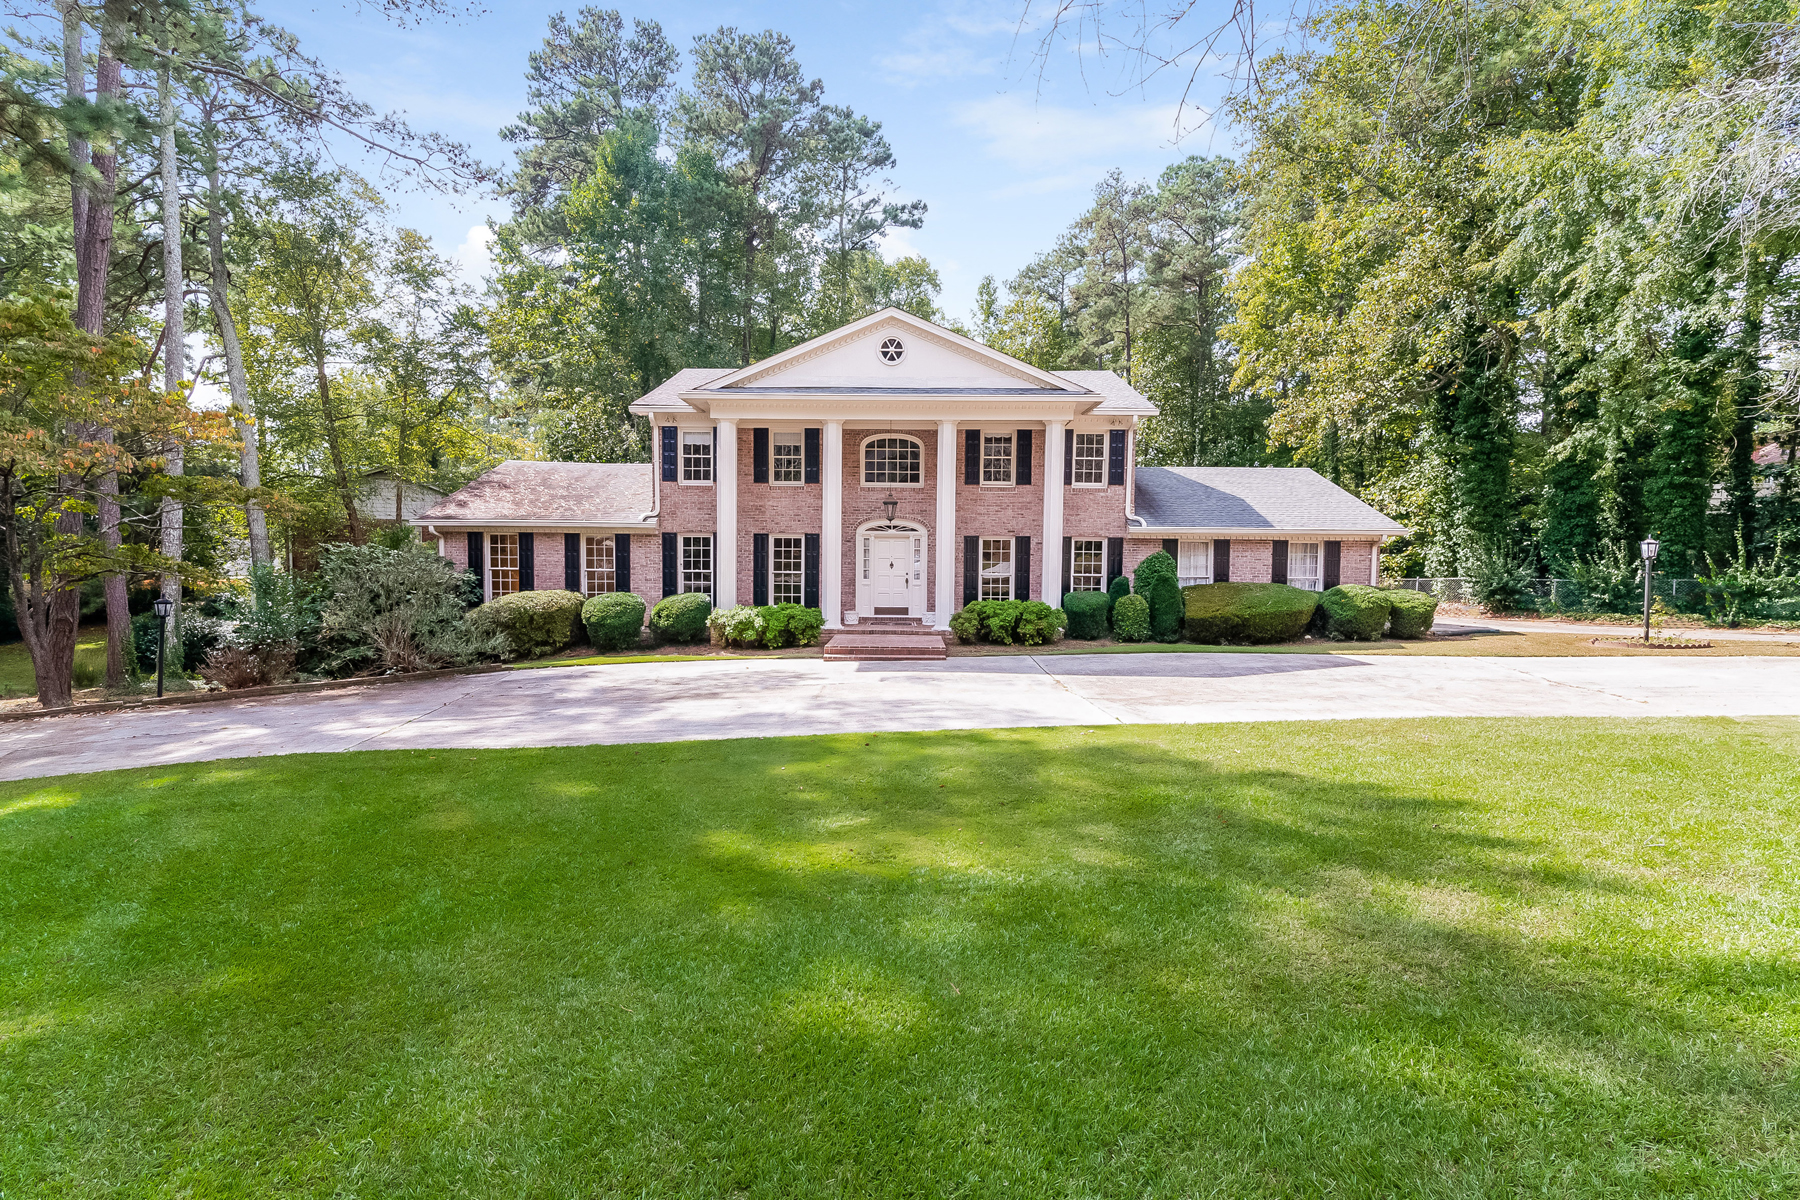 Single Family Home for Sale at Dunwoody Club Forest's Best Cul-de-sac Lot 1771 Tamworth Court Dunwoody, Georgia 30338 United States